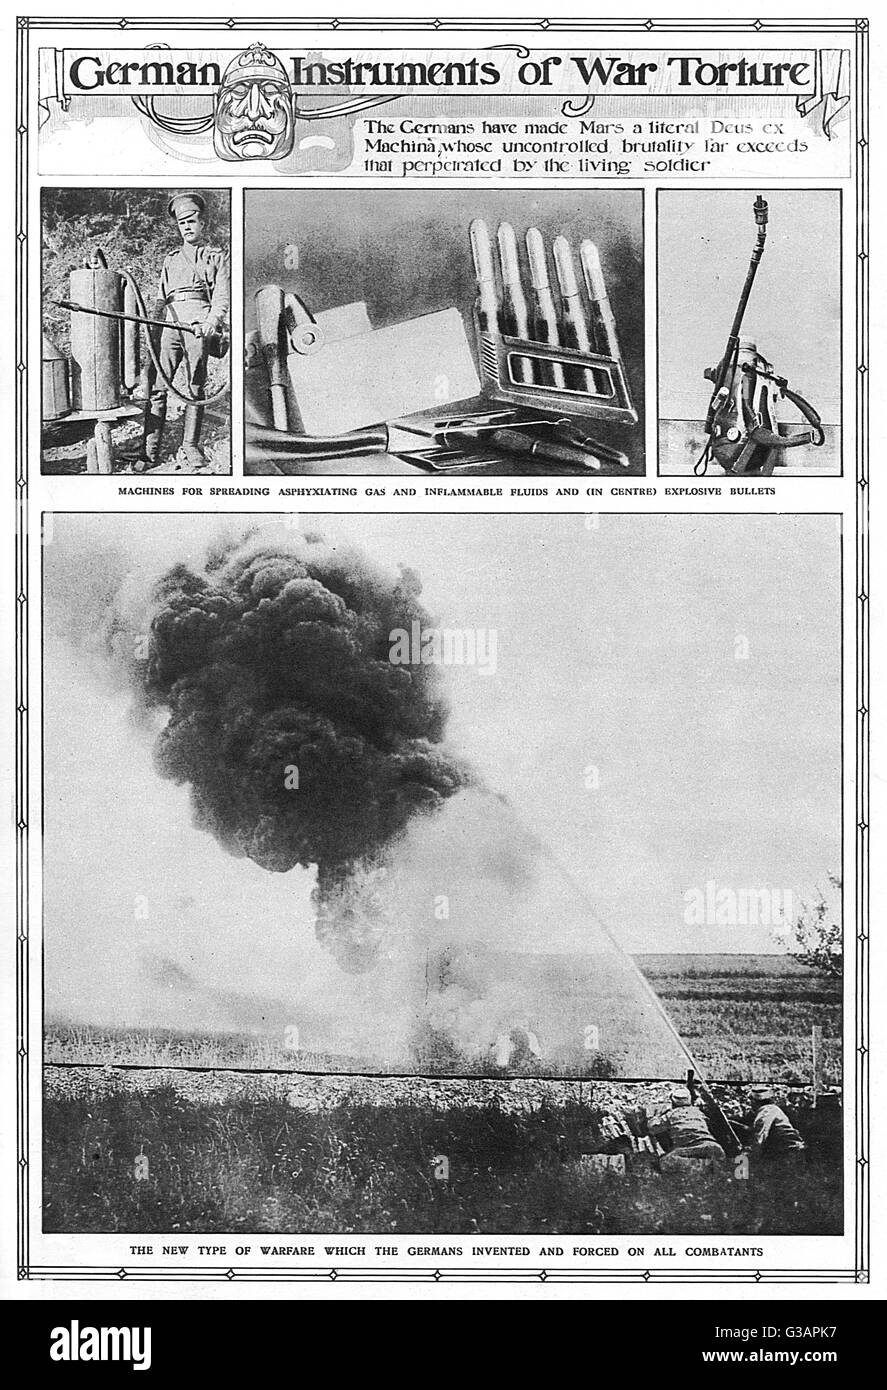 Examples of German barbarity in The Graphic magazine including machines for spreading asphyxiating gas and inflammable - Stock Image